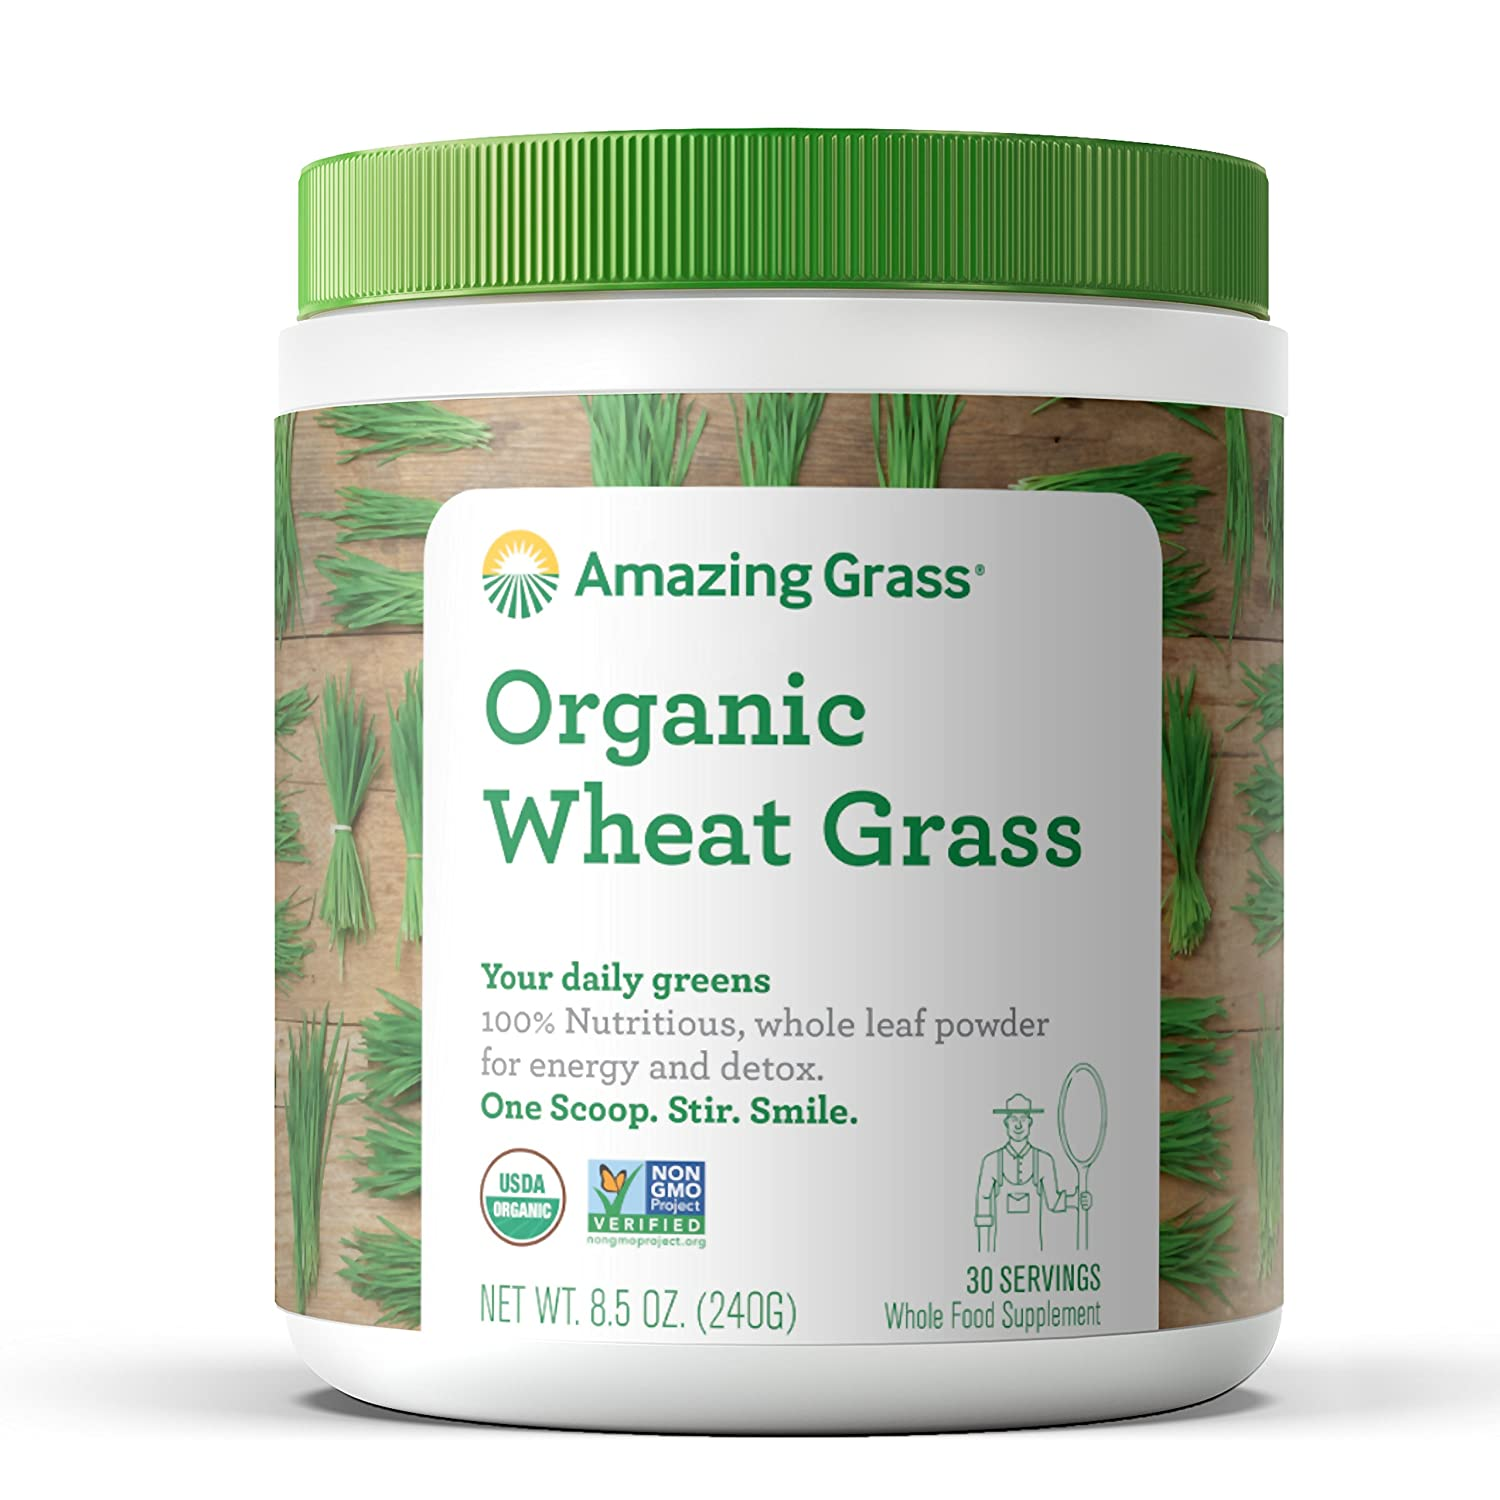 Amazing Grass Wheat Grass Powder: 100% Whole-Leaf Wheat Grass Powder for Energy, Detox & Immunity Support, 30 Servings